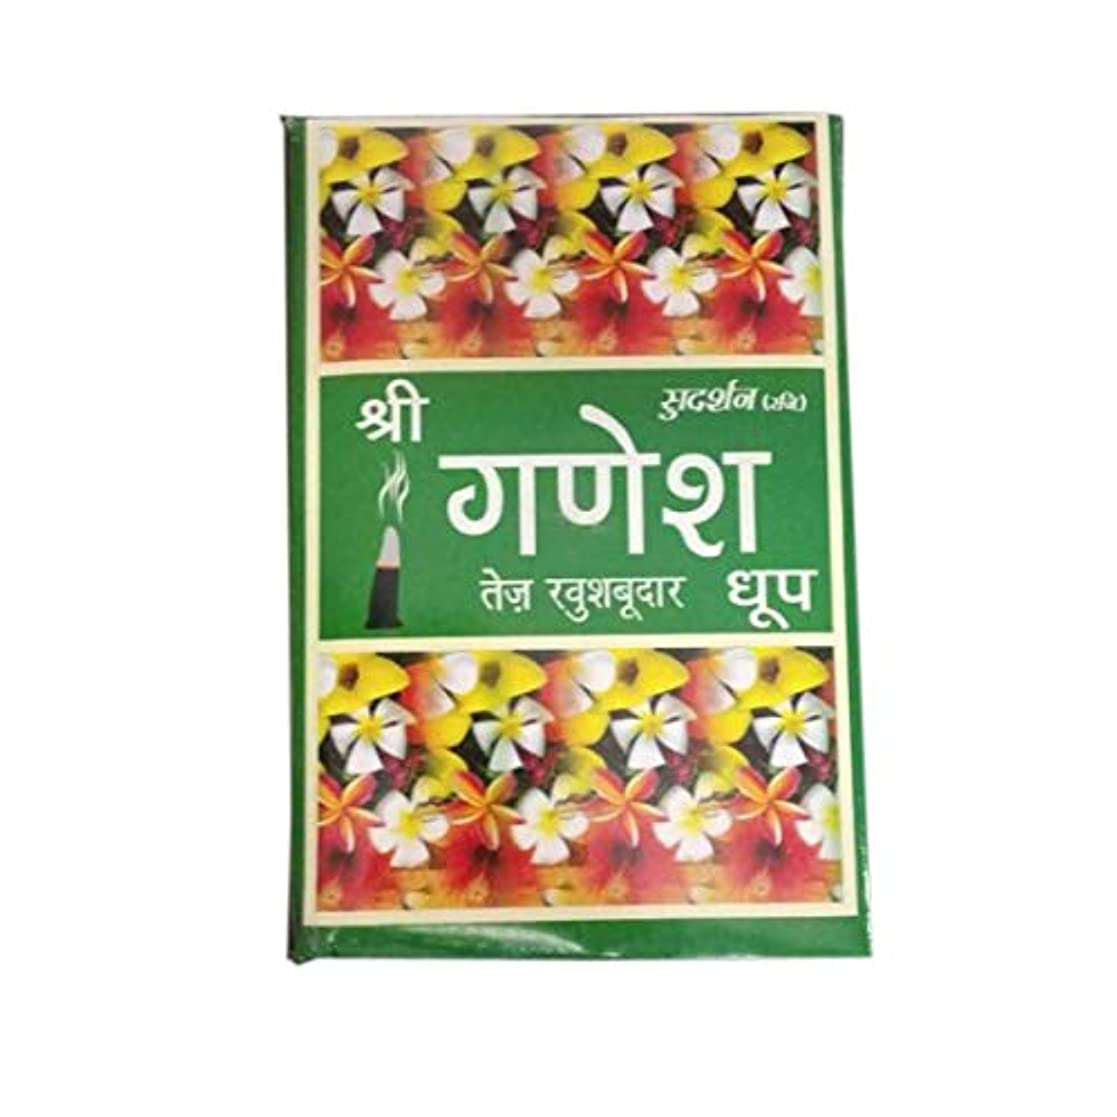 コロニアル耐えられる瞑想Total Home :Sudarshan Shri Ganesh Highly Perfumed dhoop Fragrance for Positivity & Freshness Fragrance Dhoop Batti...